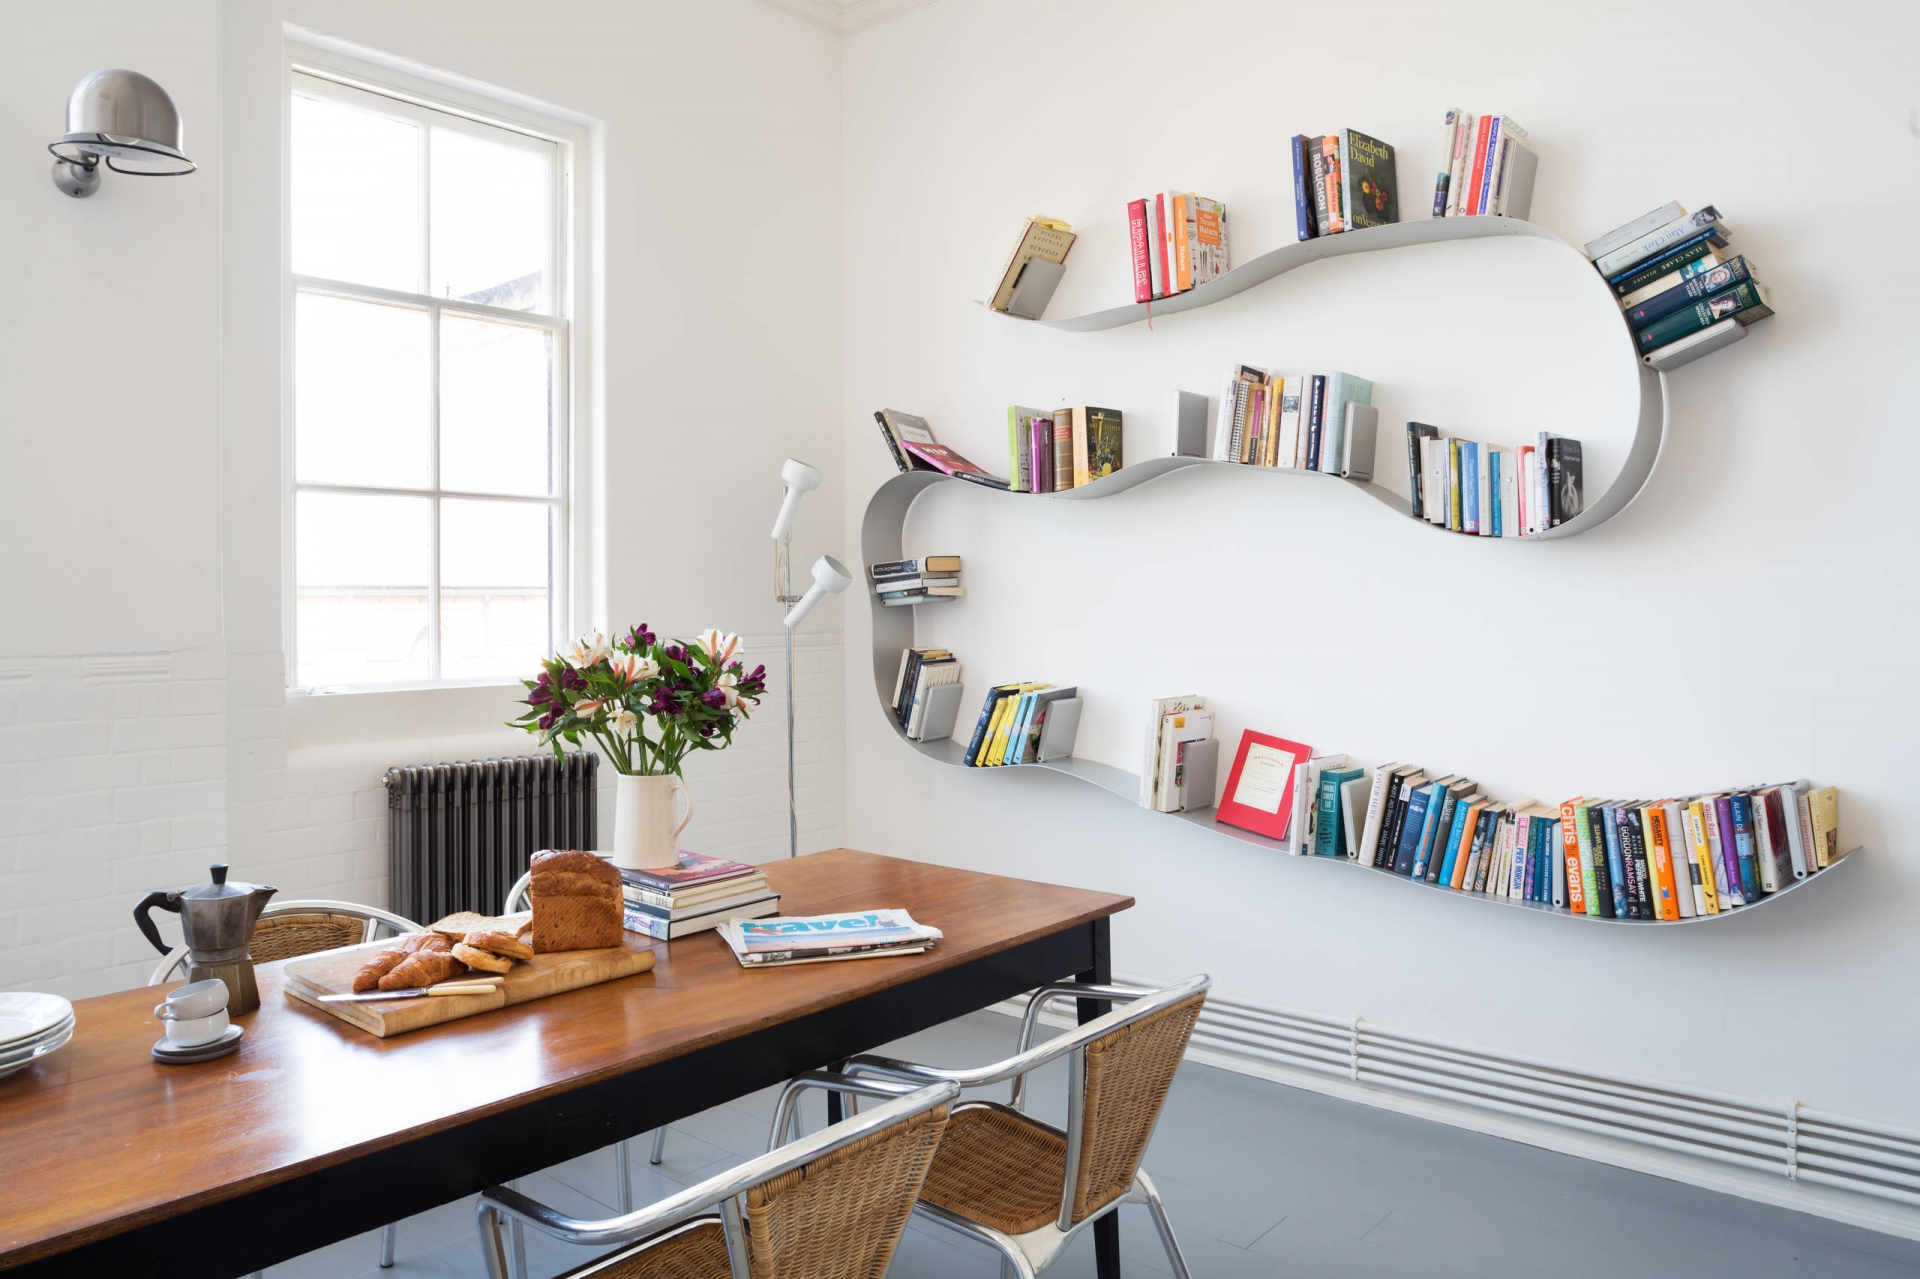 50 Best Bookshelf Ideas and Decor for 2018